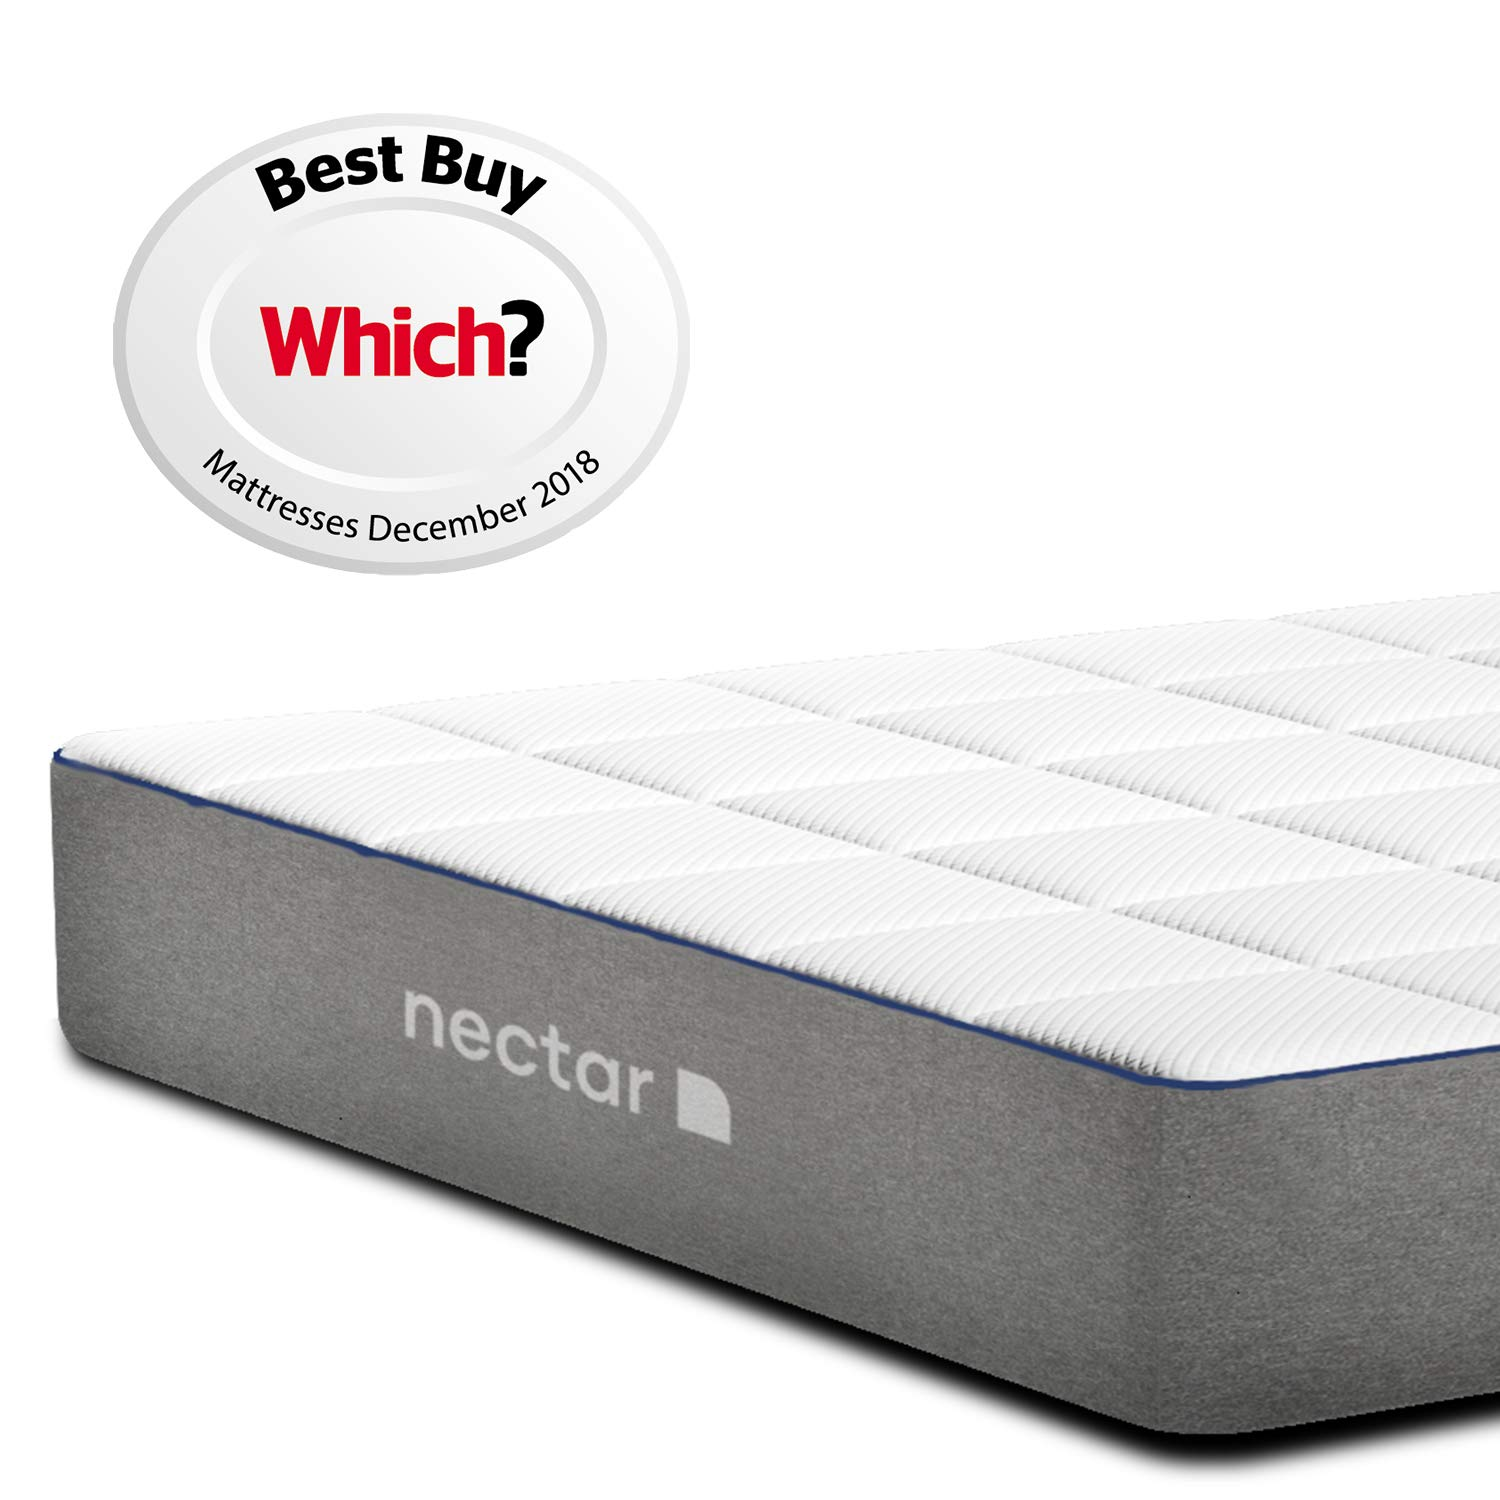 Nectar King Mattress | Memory Foam | Awarded Which Best Buy | Risk-Free 365  Night Home Trial with Forever Warranty | Good Housekeeping Recommended and